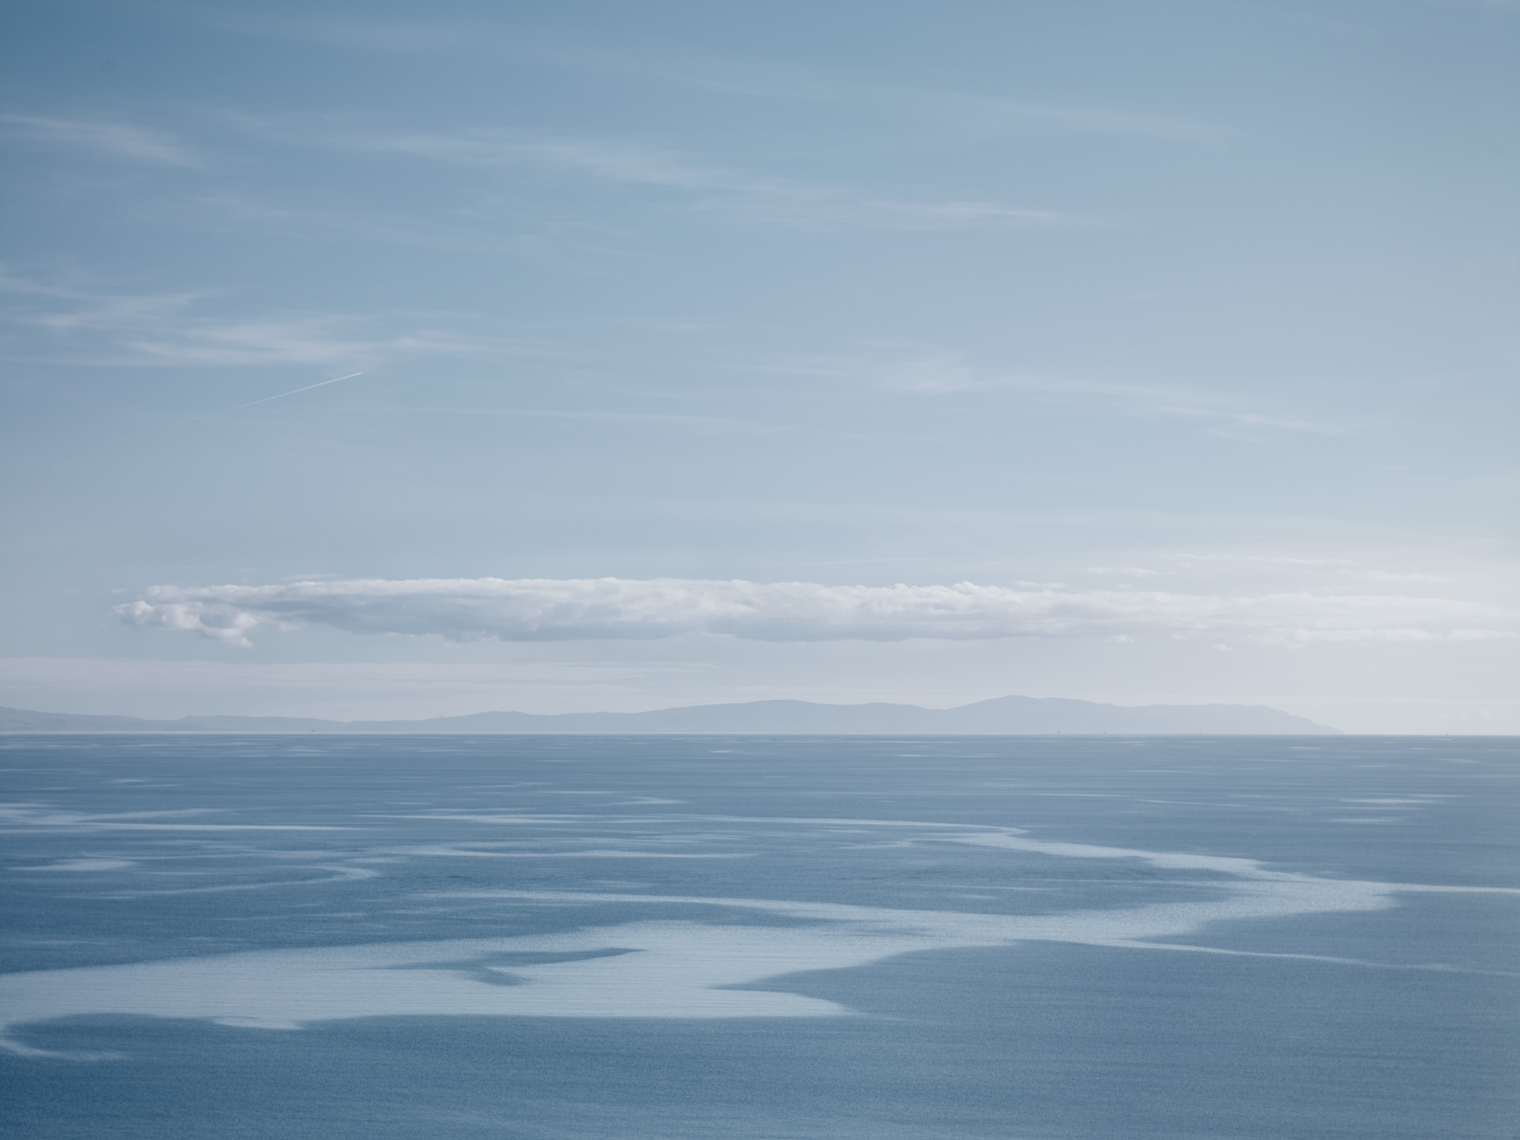 Jon Wyatt Photography - Sound of Jura V - seascape of the Sound of Jura looking towards the Scottish mainland